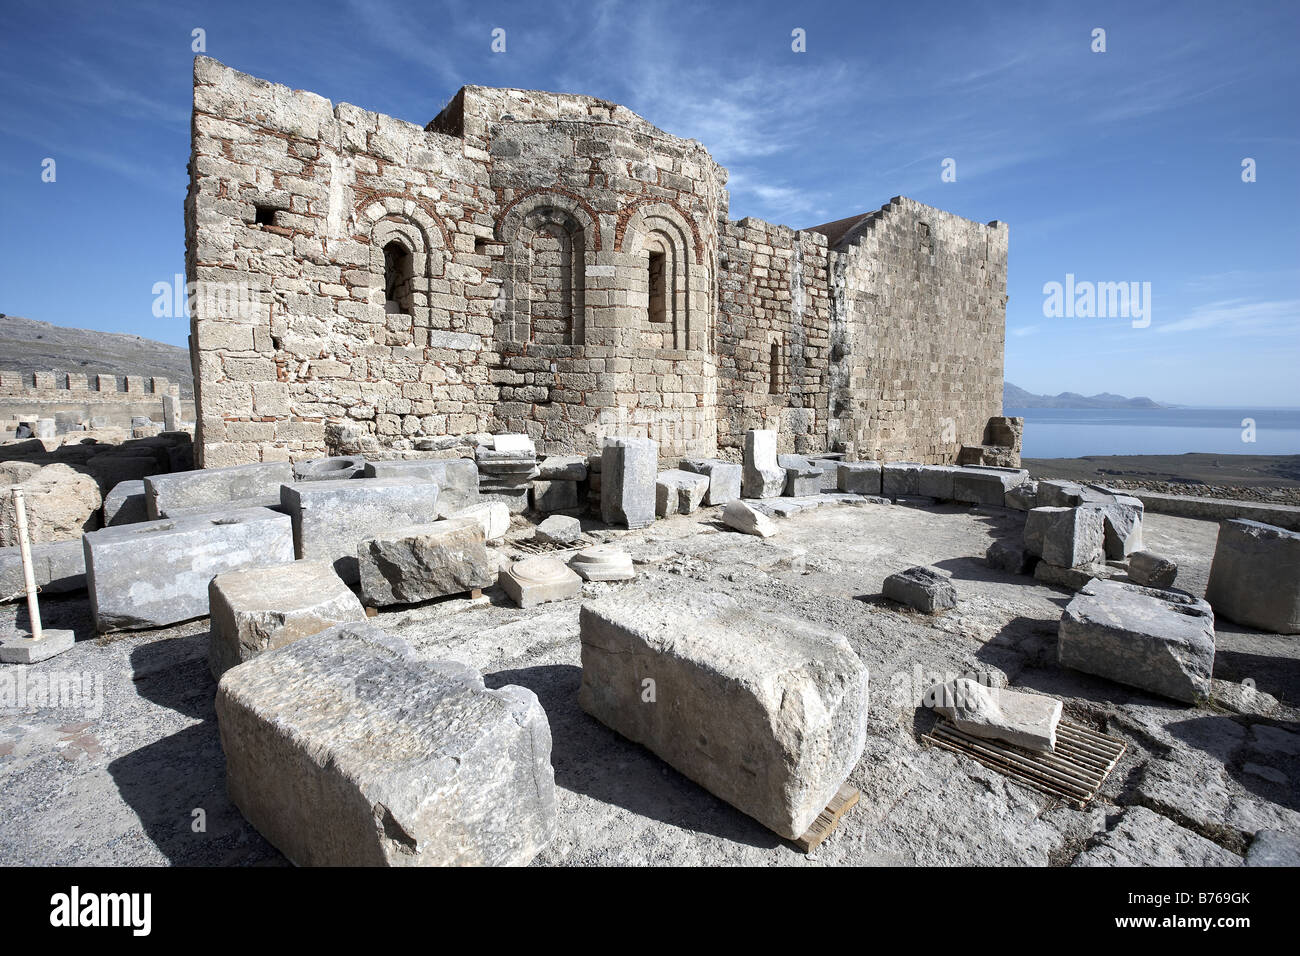 Part of the Acropolis Lindos Island of Rhodes Greece - Stock Image